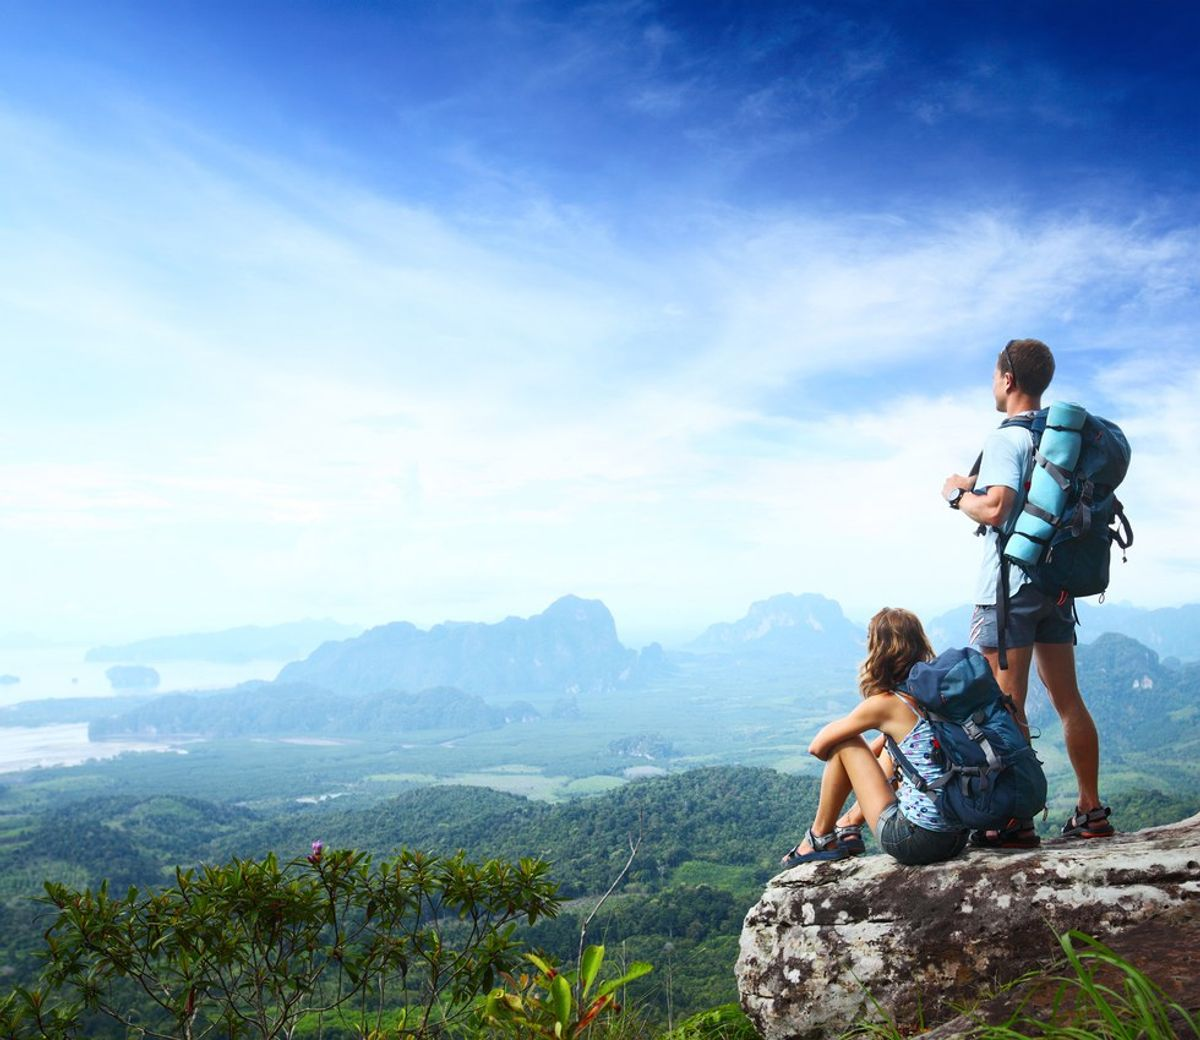 10 Reasons You Should Go Backpacking This Summer